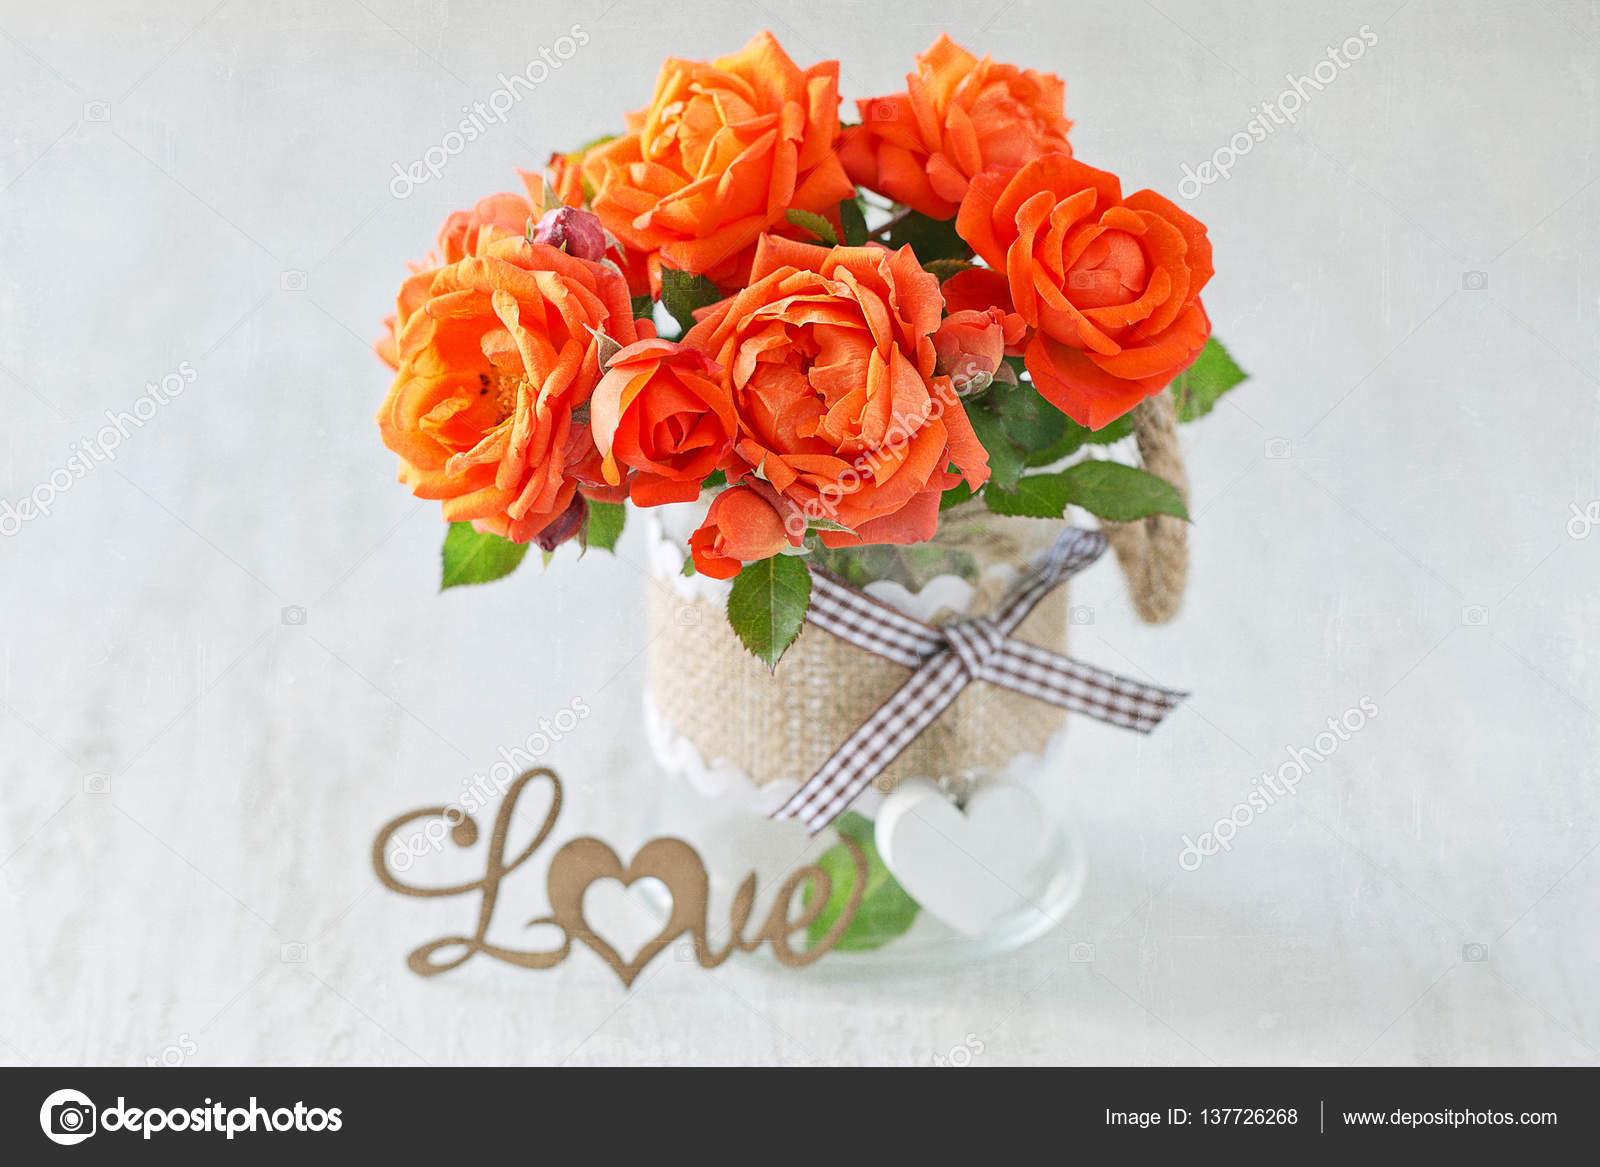 Beautiful fresh roses flowers stock photo ulchik74 137726268 lovely bunch of flowers autiful fresh roses flowers in a vase decorated with a heart on a background with texture photo by ulchik74 izmirmasajfo